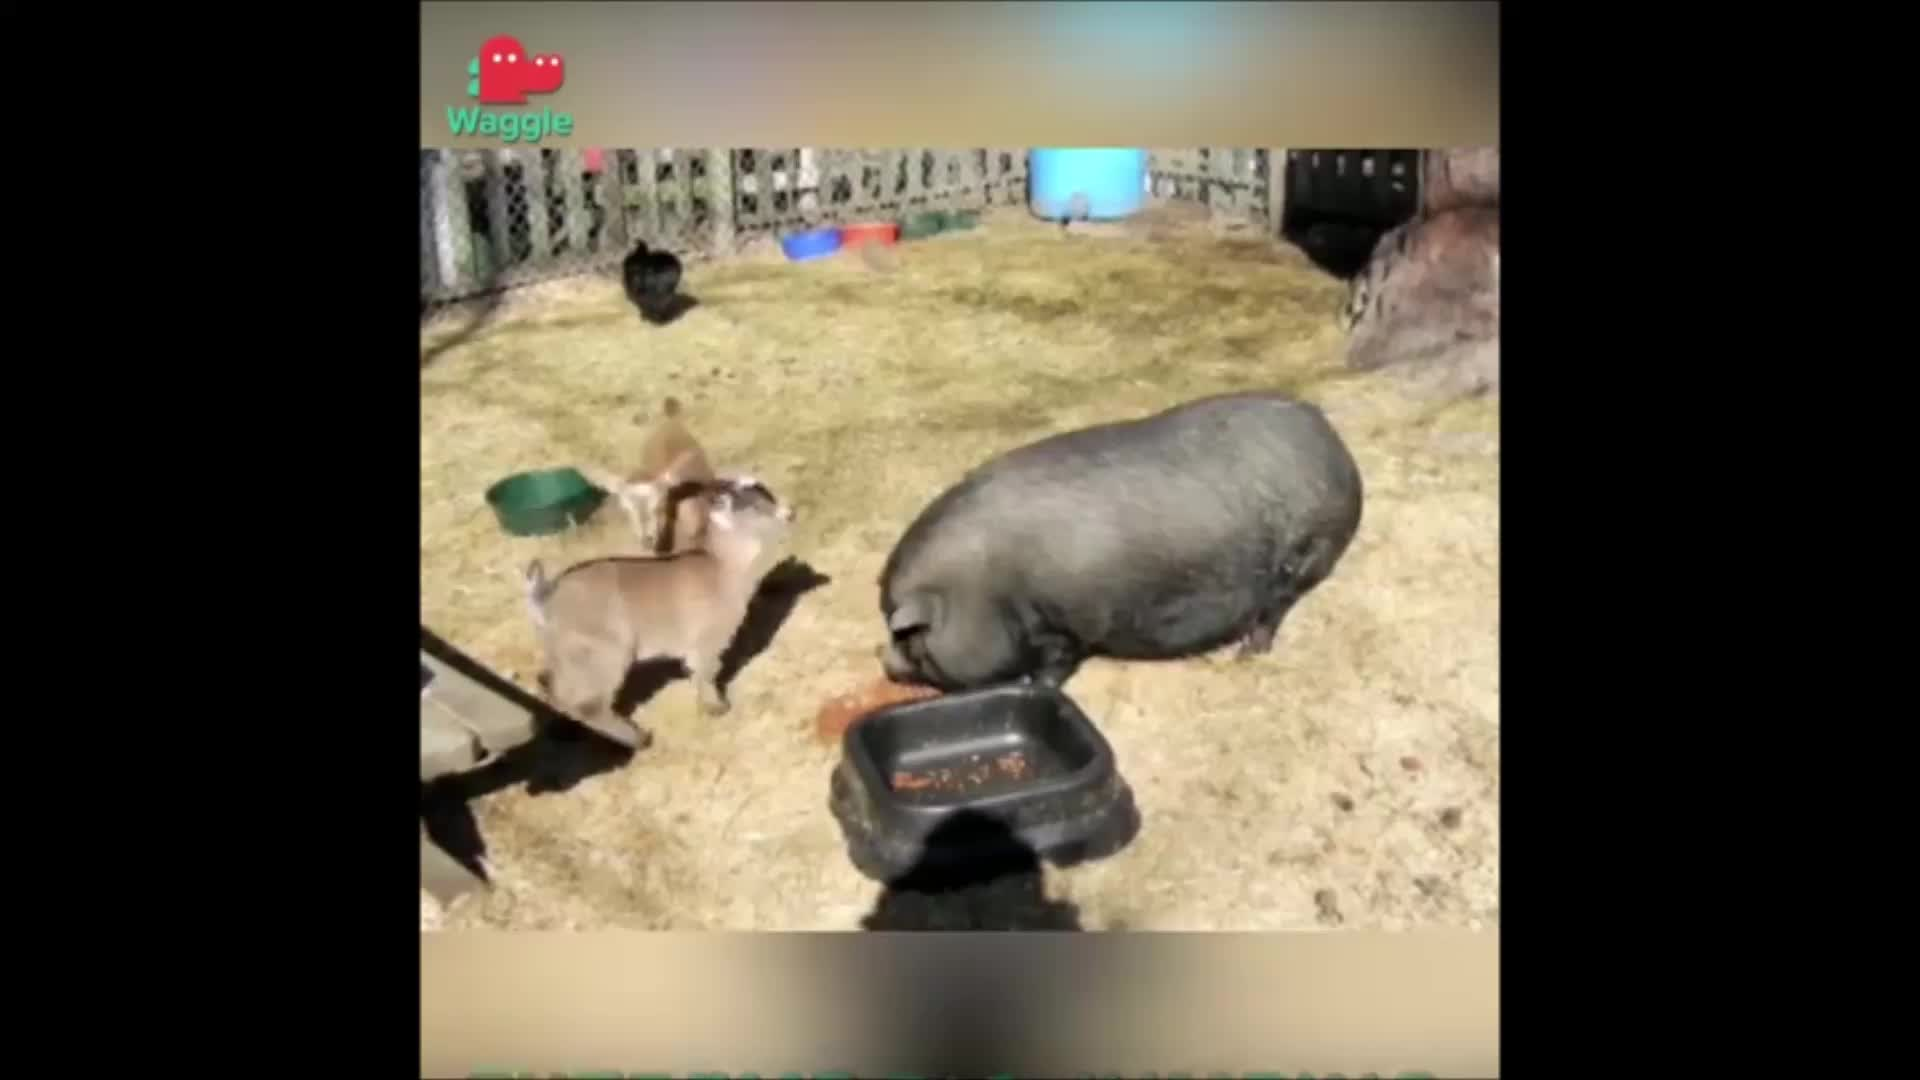 aww, cute, eyebleach, funny, goatparkour, goats, kids, knsfarm, Extreme Pig-top Parkour (Source: Unknown) GIFs